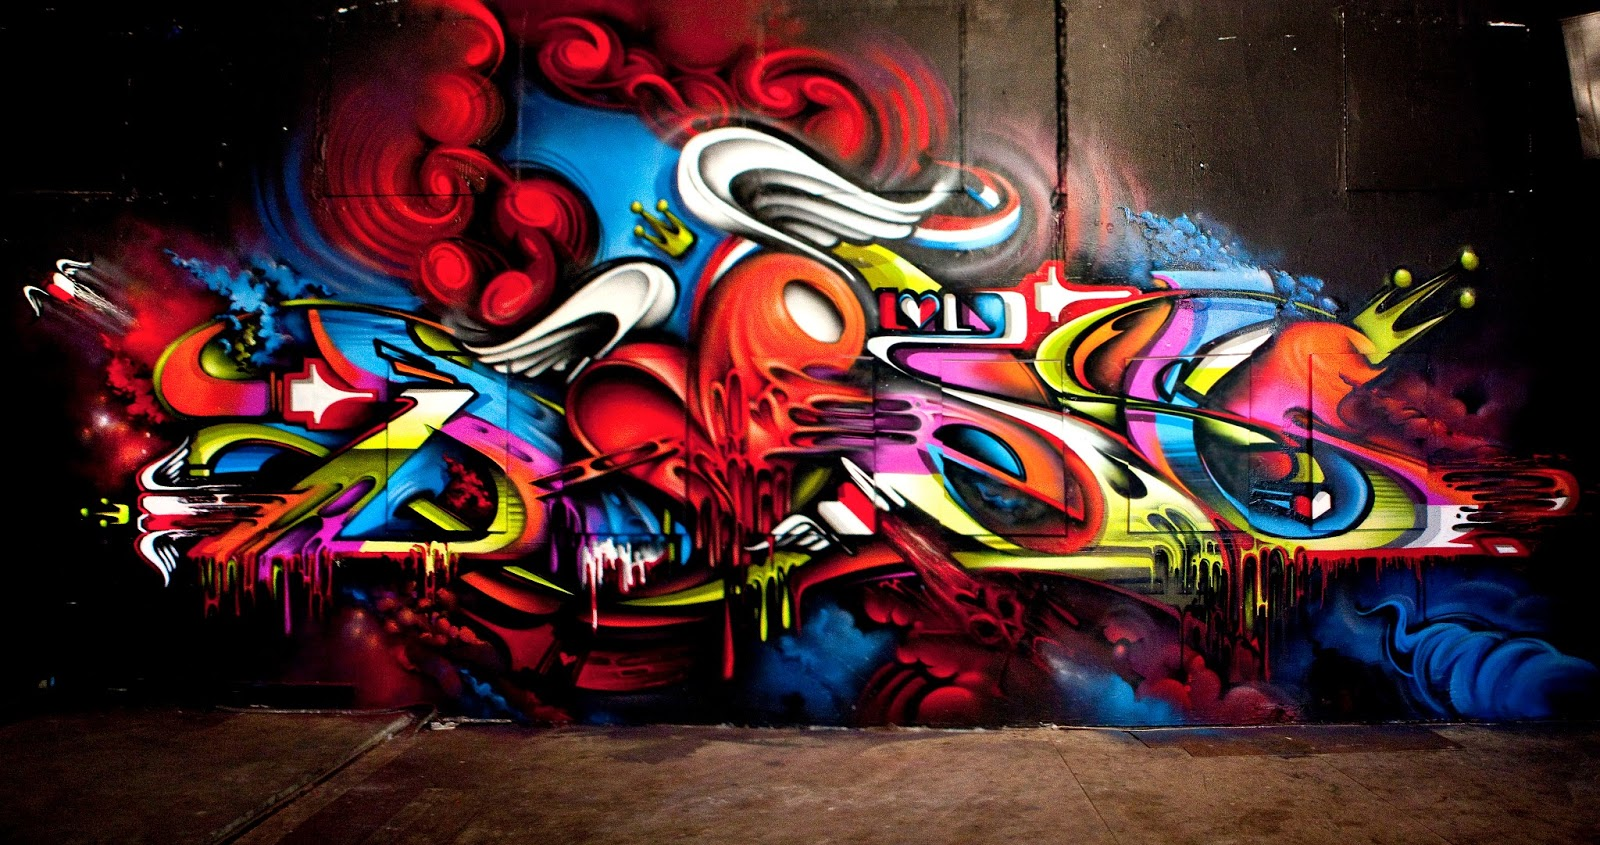 Bright Graffiti on the Wall 2496.18 Kb